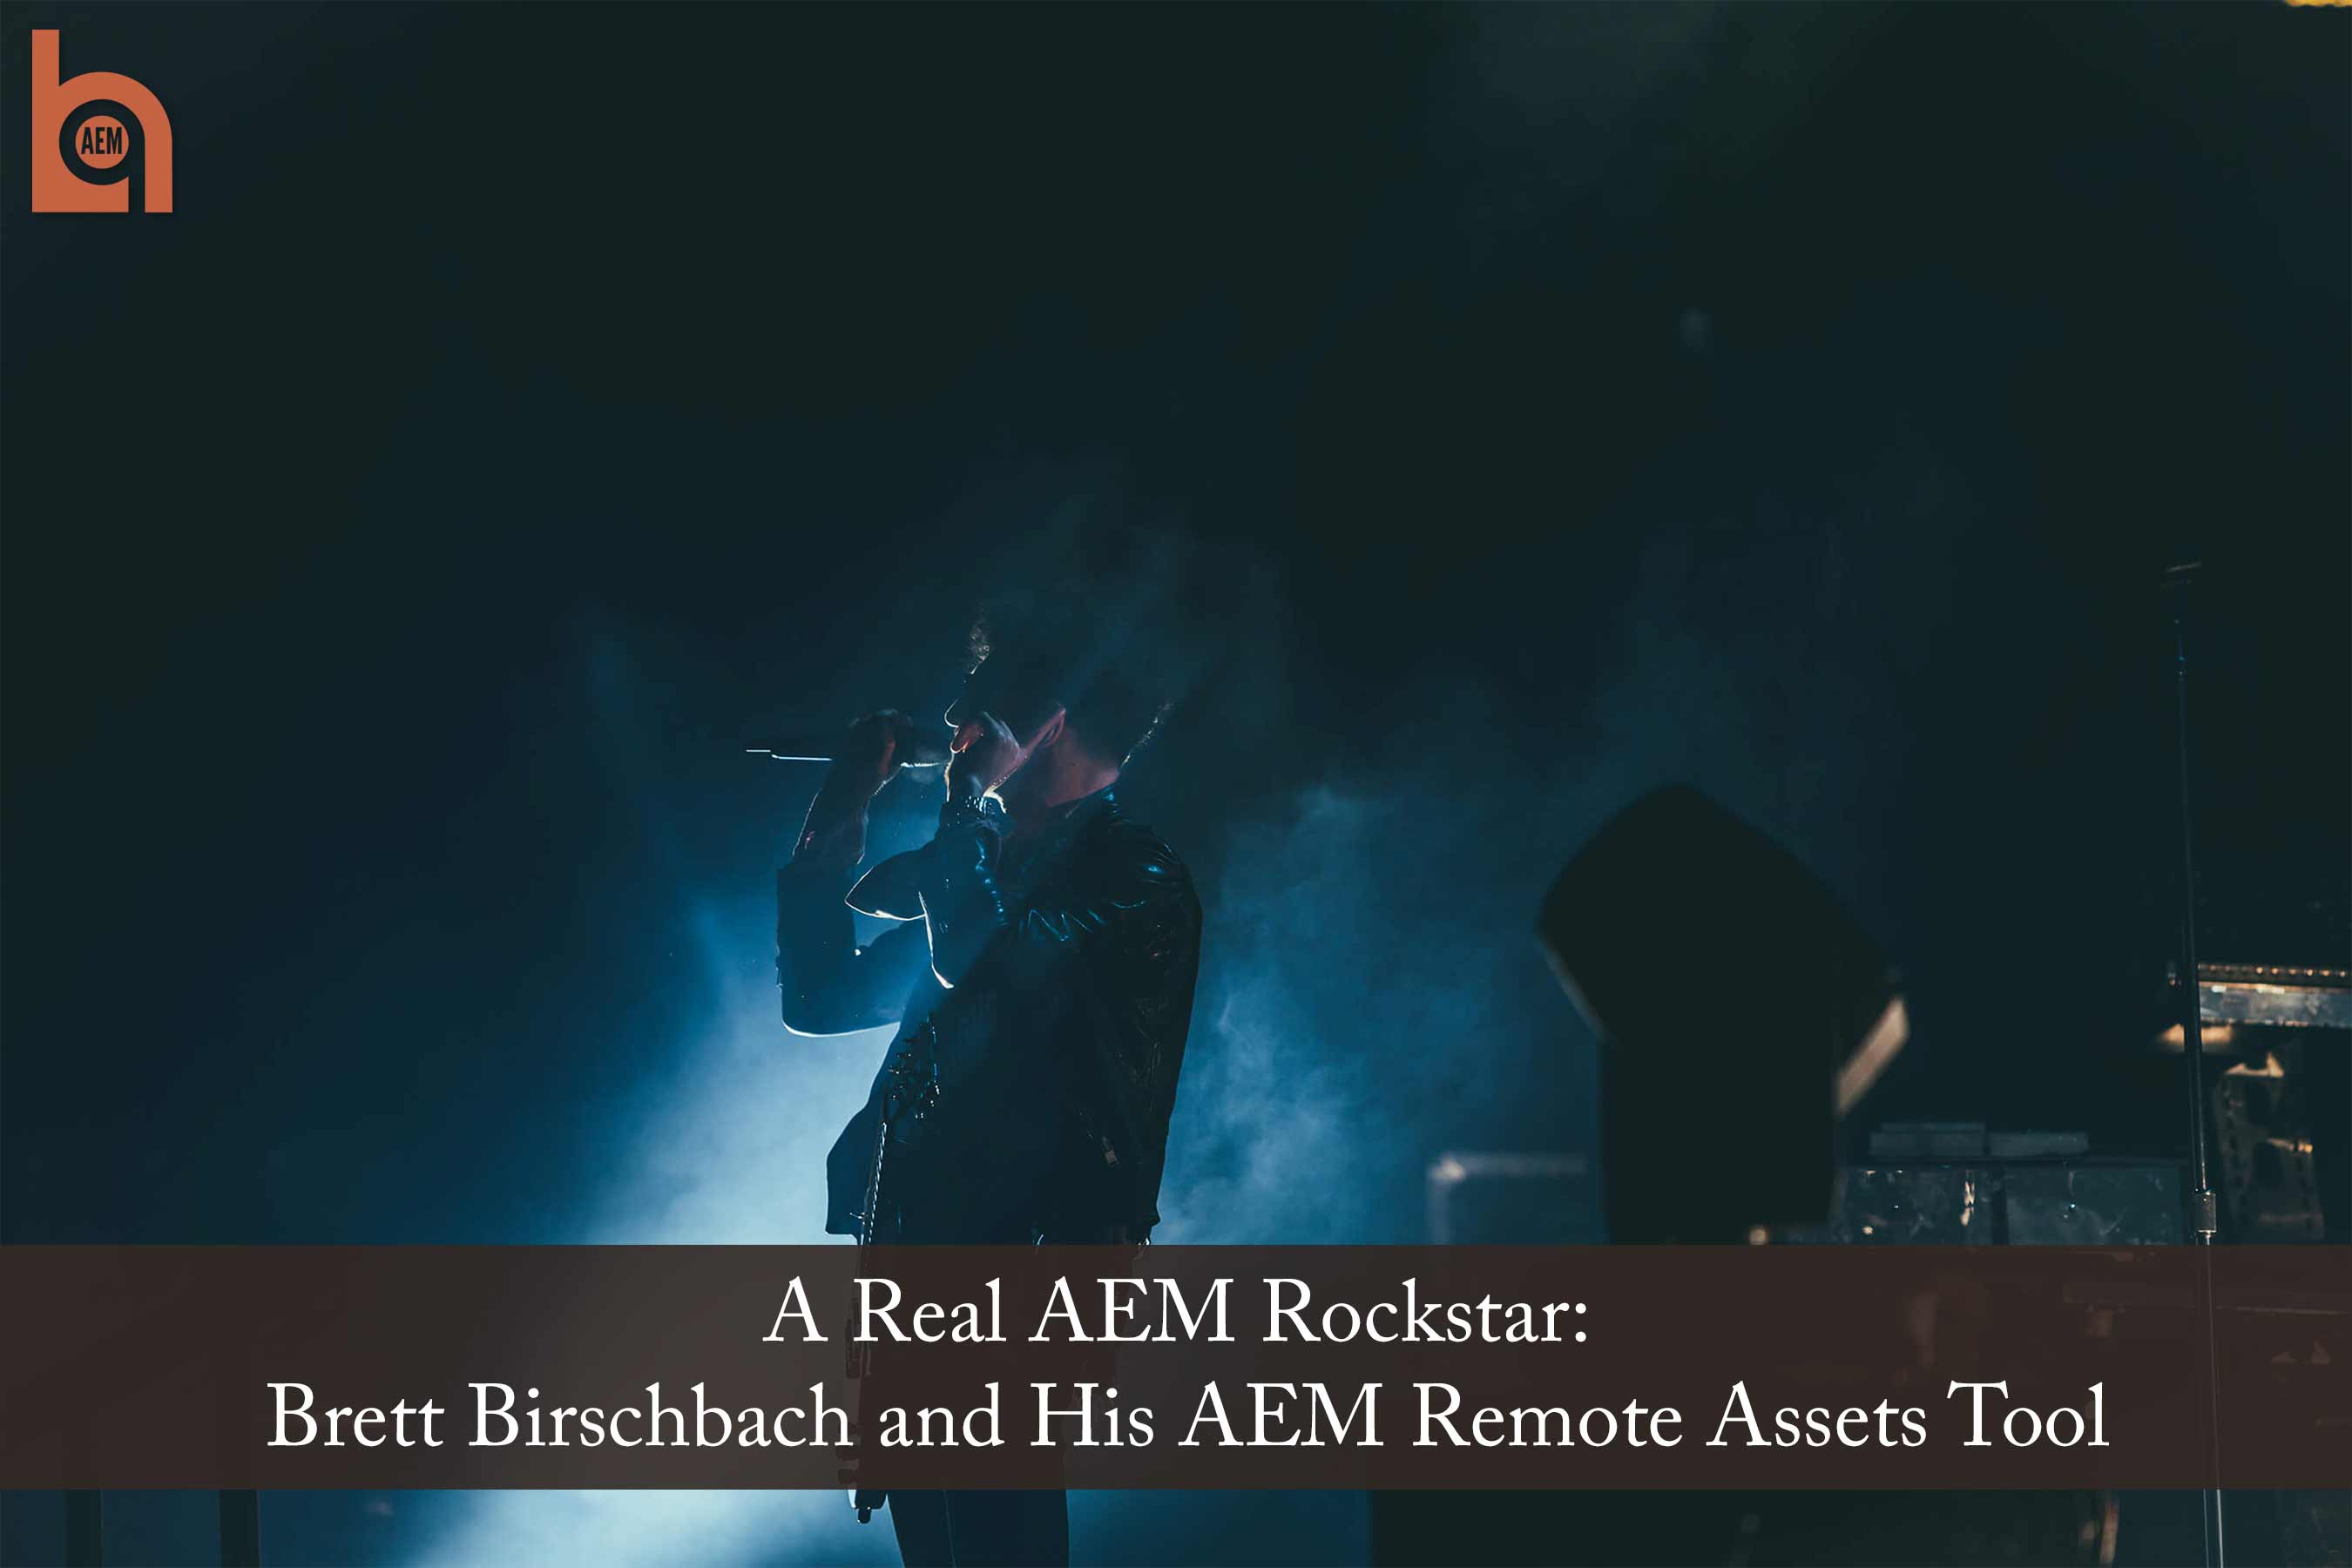 A Real AEM Rockstar - Brett Birschbach and His AEM Remote Assets Tool